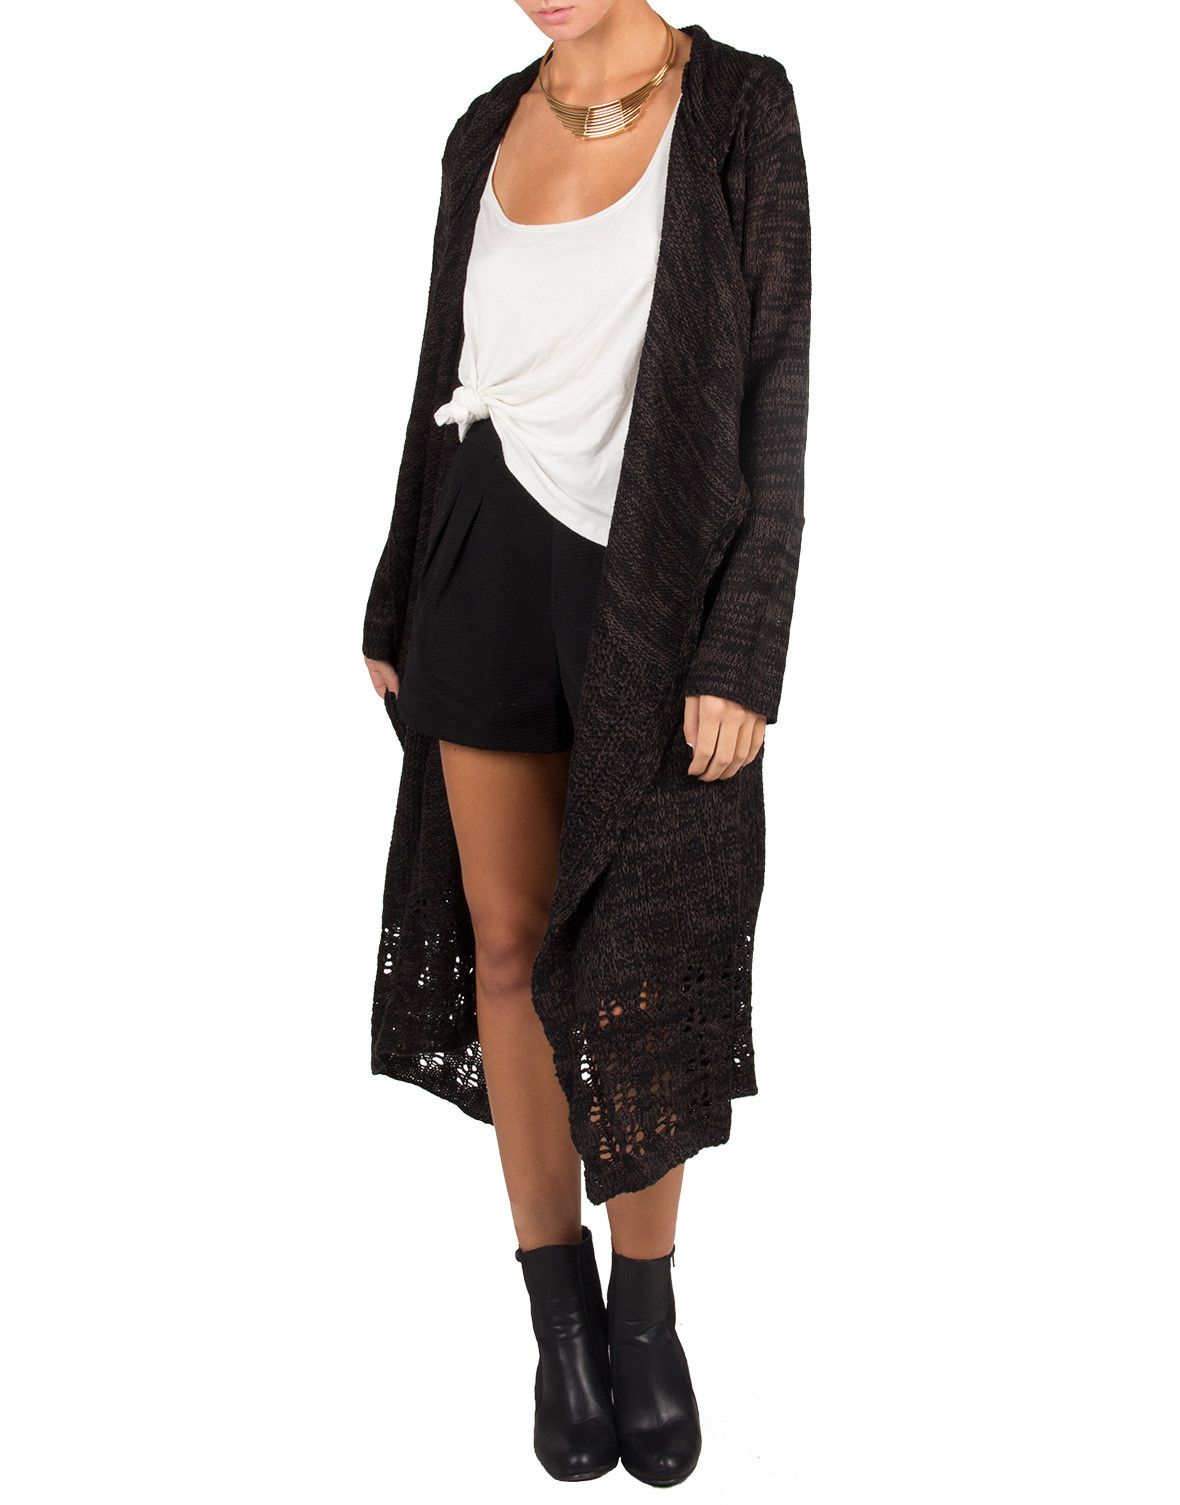 Long Holey Open Knit Cardigan - Large | Style We Like | Pinterest ...